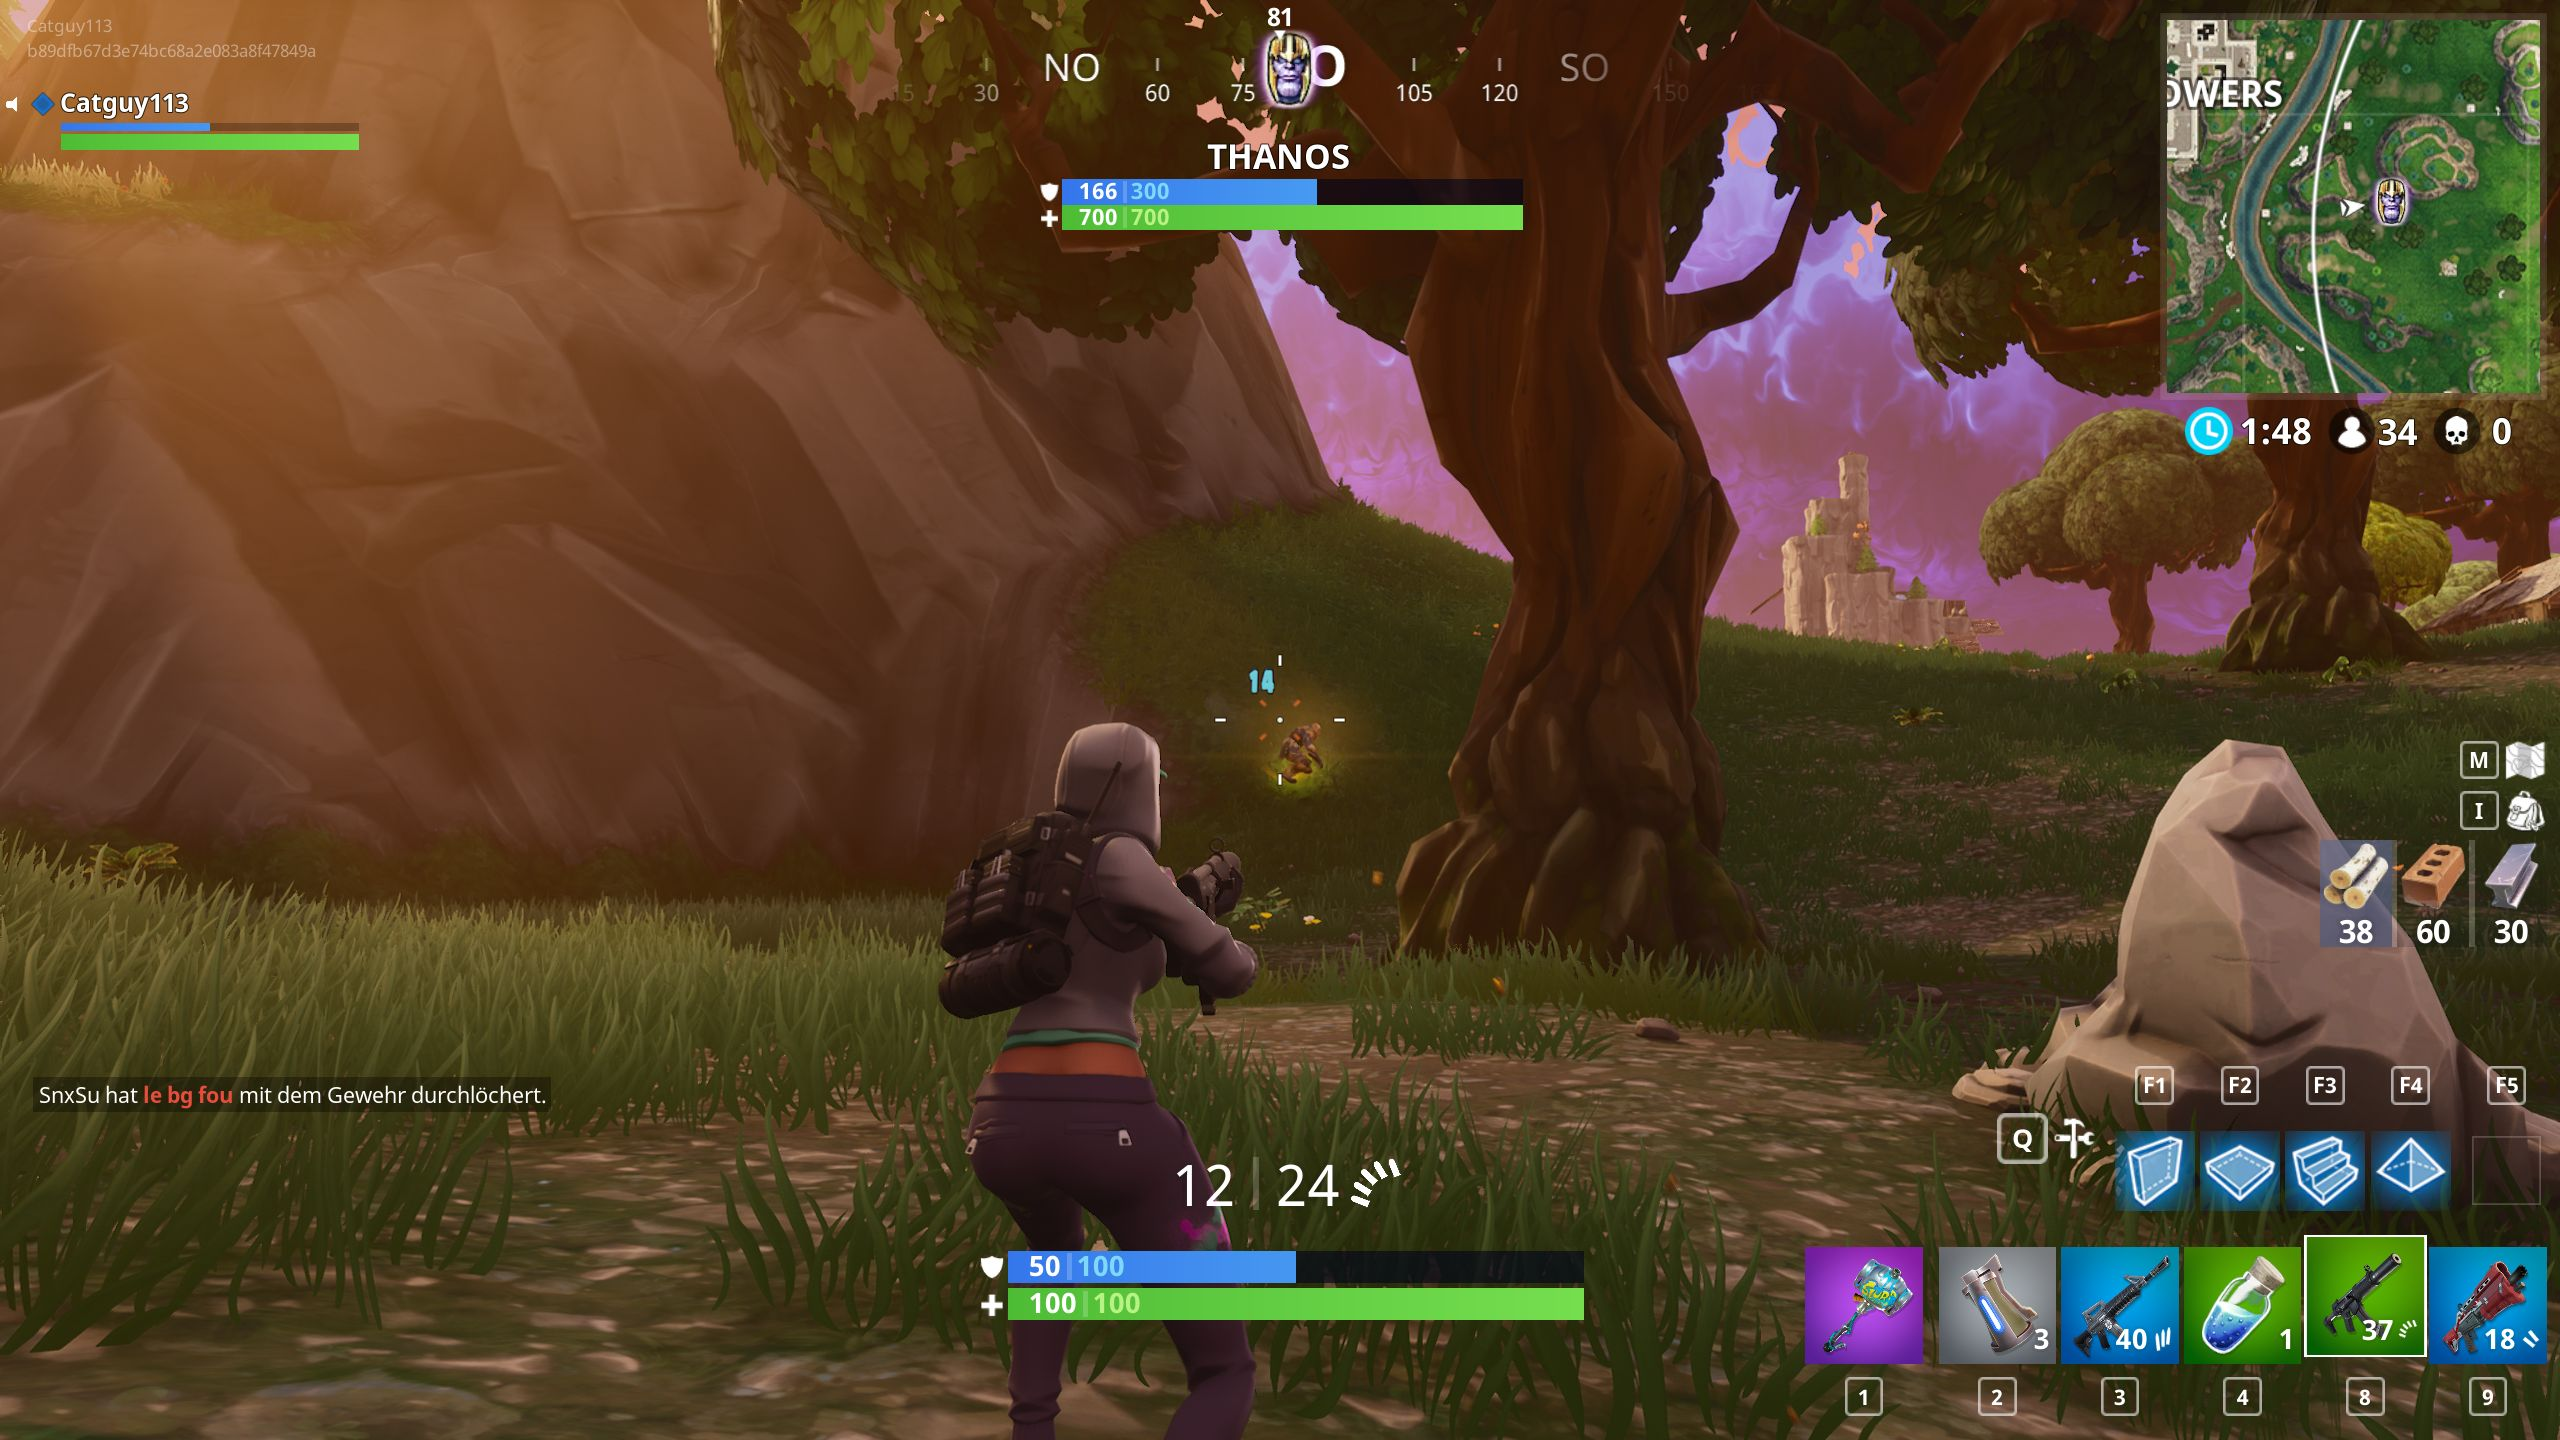 Fortnite-Thanos-Screens-1-07